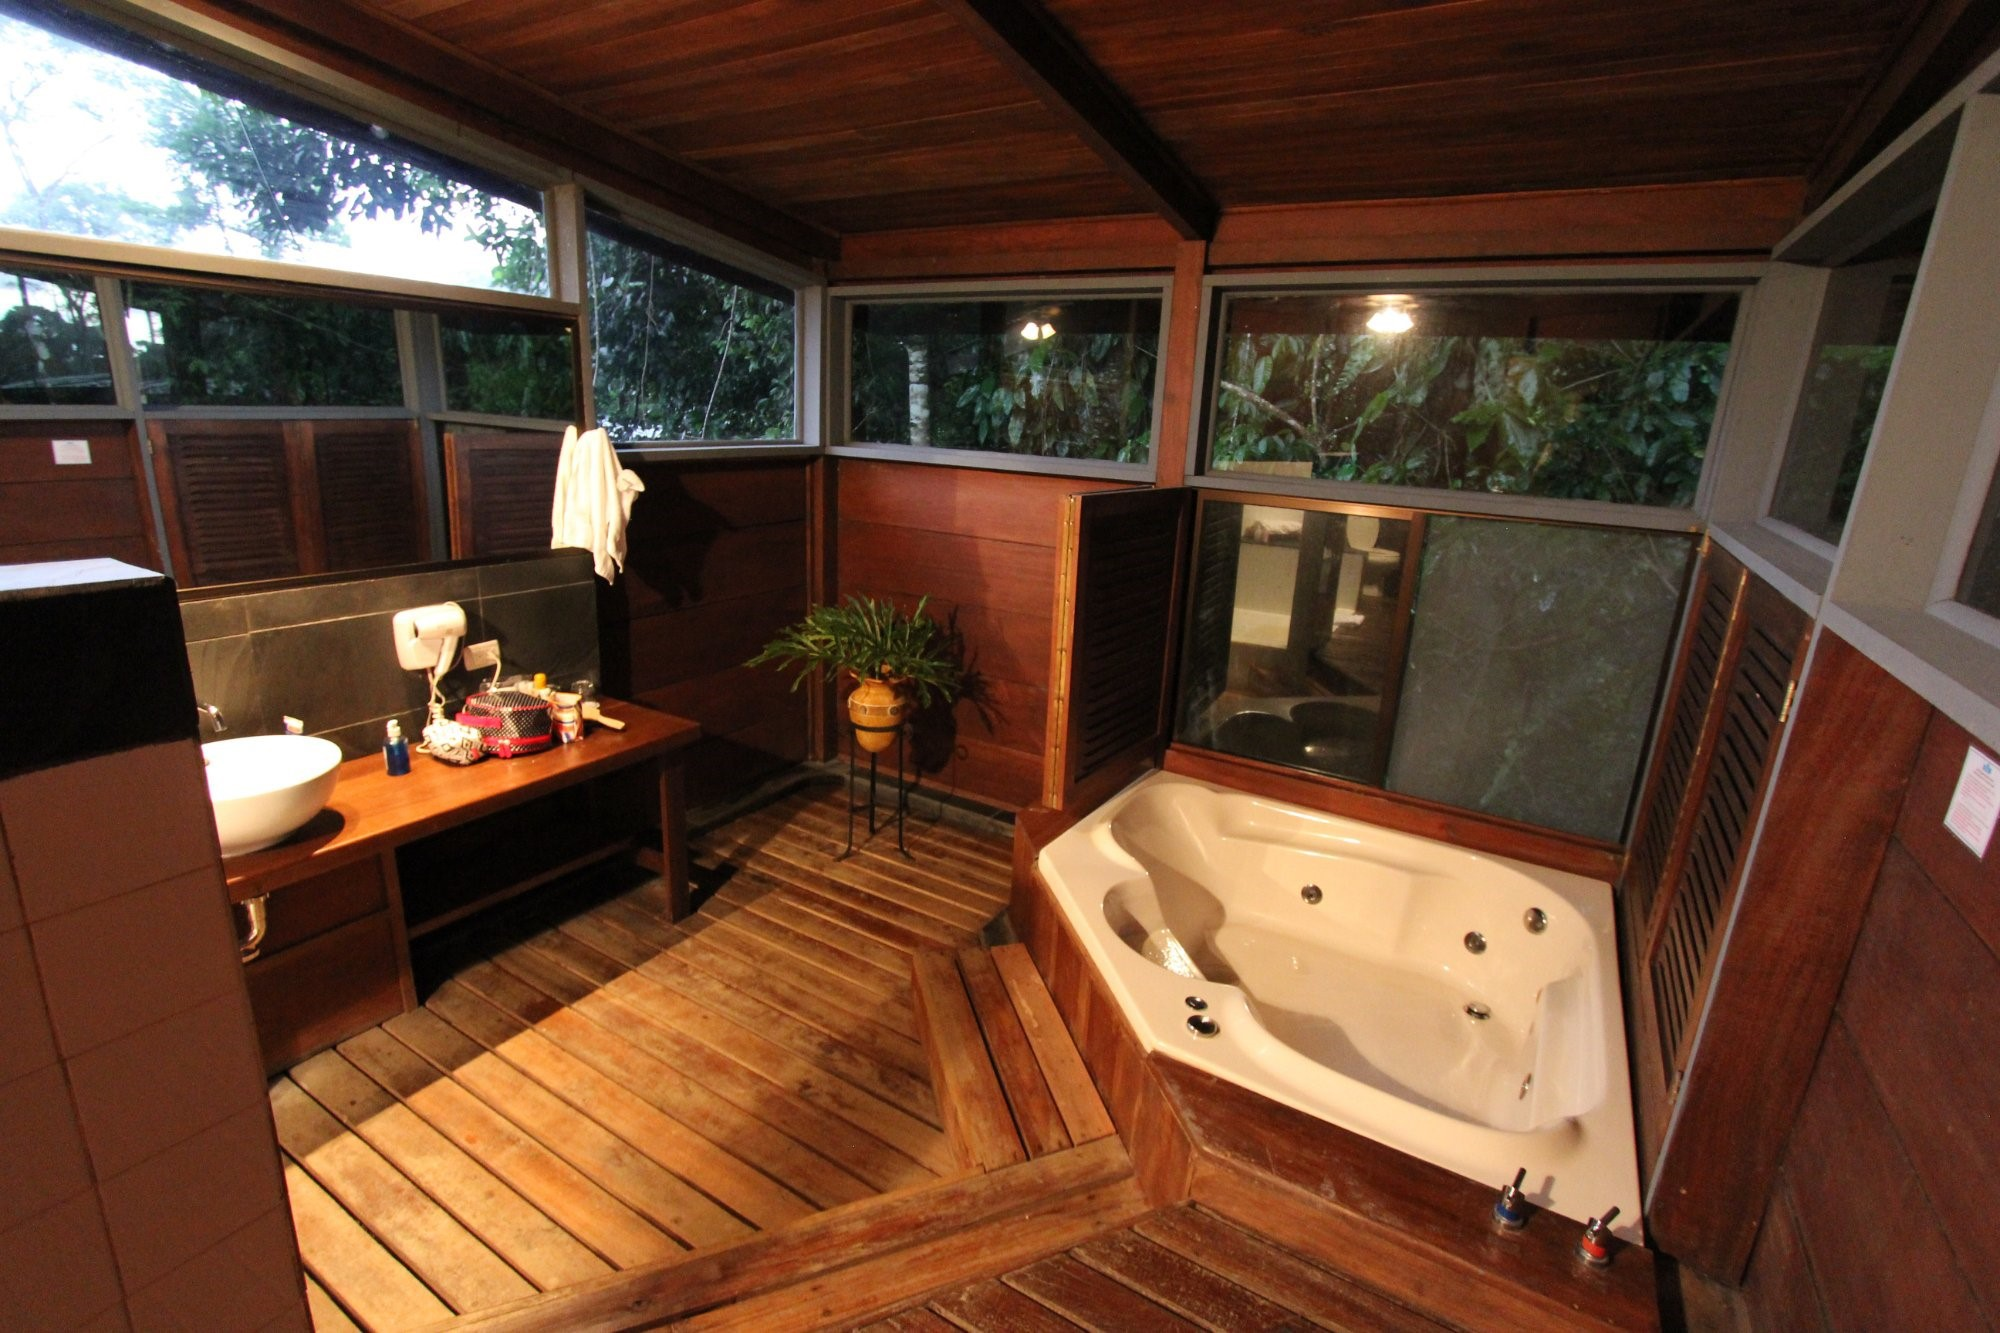 Overnight canyoning in Costa Rica with a stay at a rustic rainforest lodge.